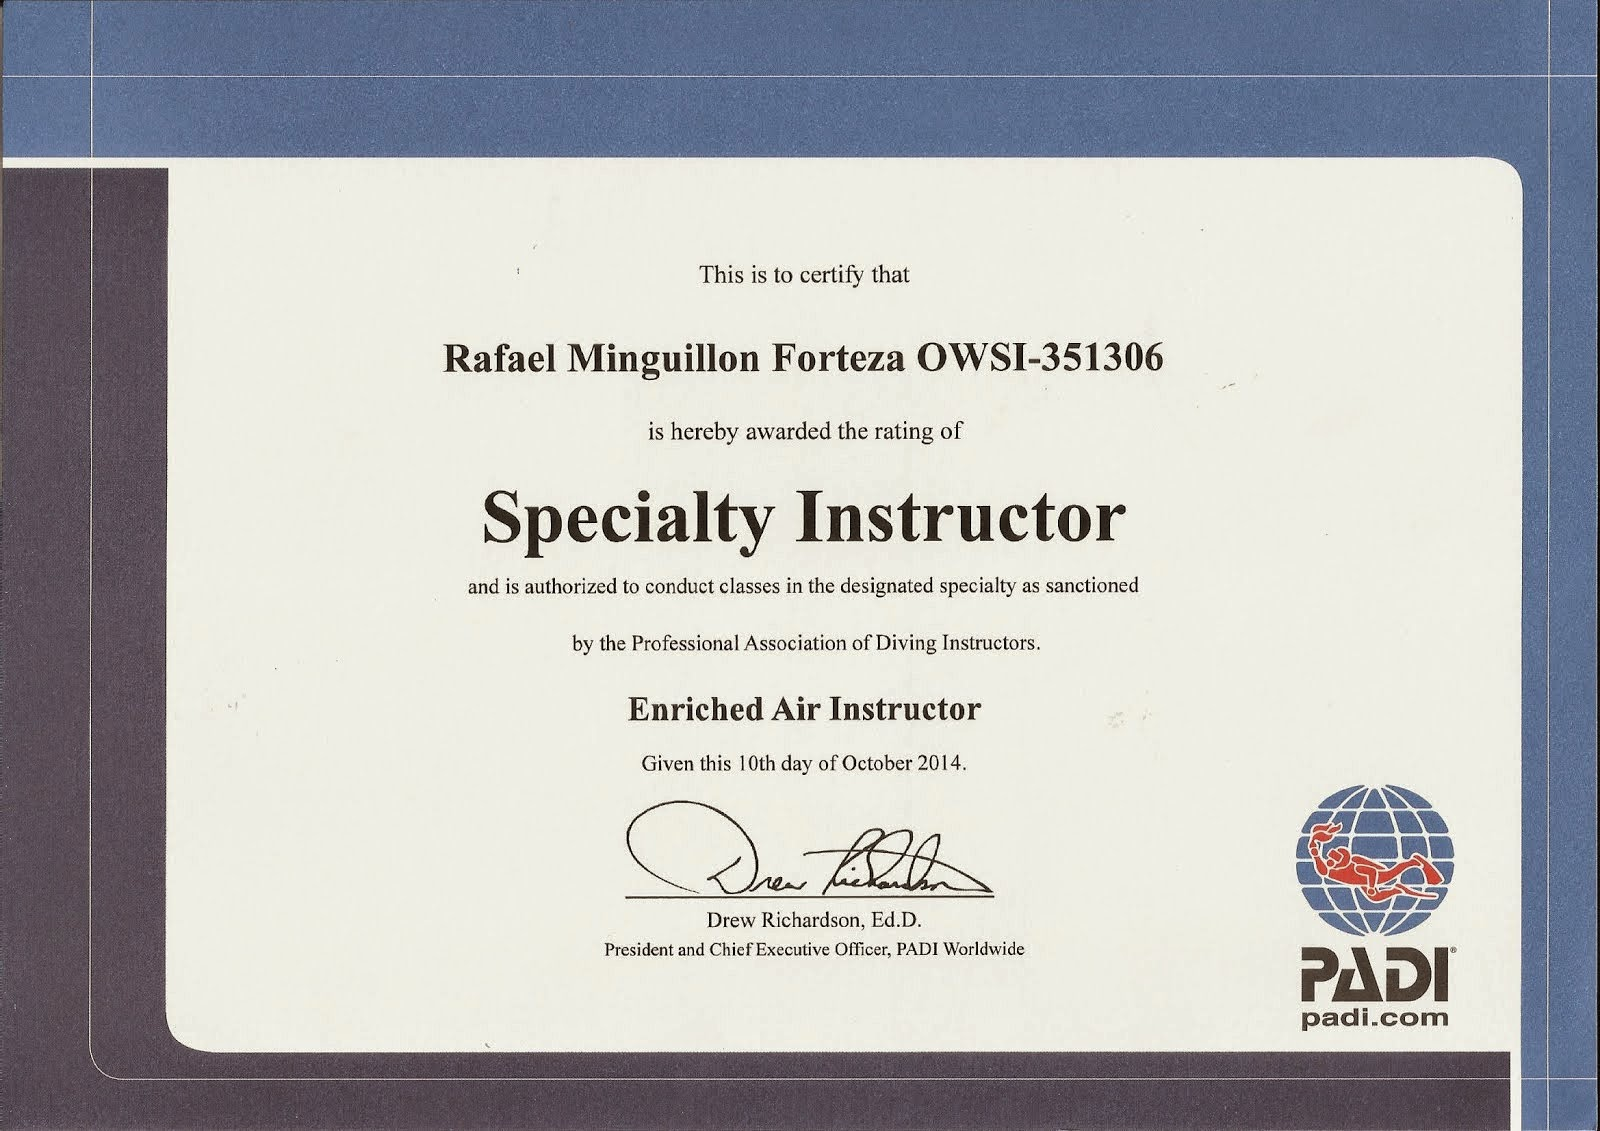 Specialty Instructor Enriched Air Instructor